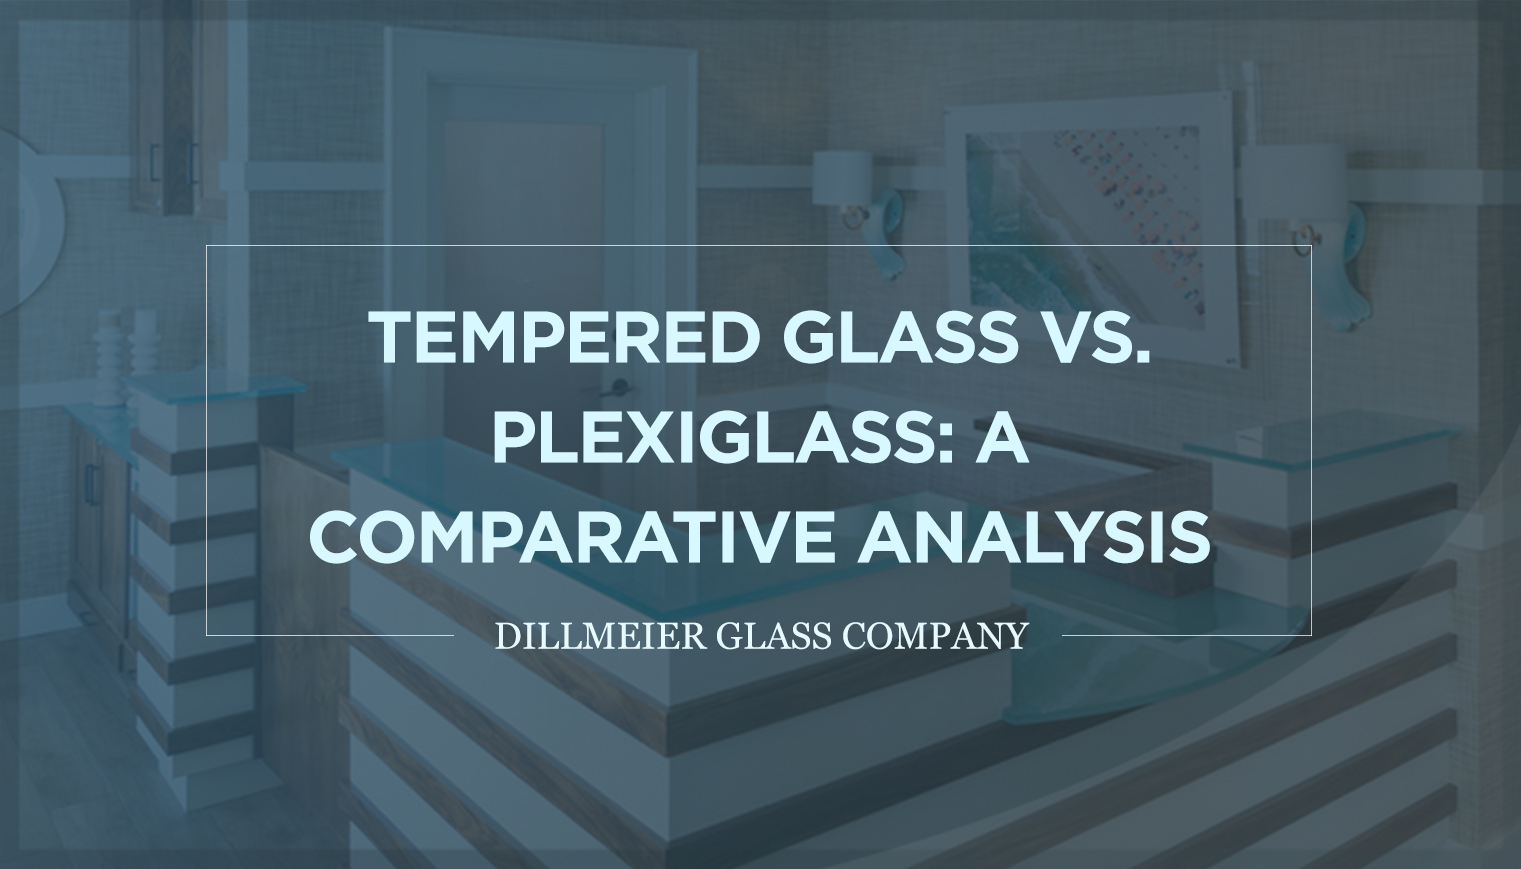 Tempered Glass vs. Plexiglass: A Comparative Analysis